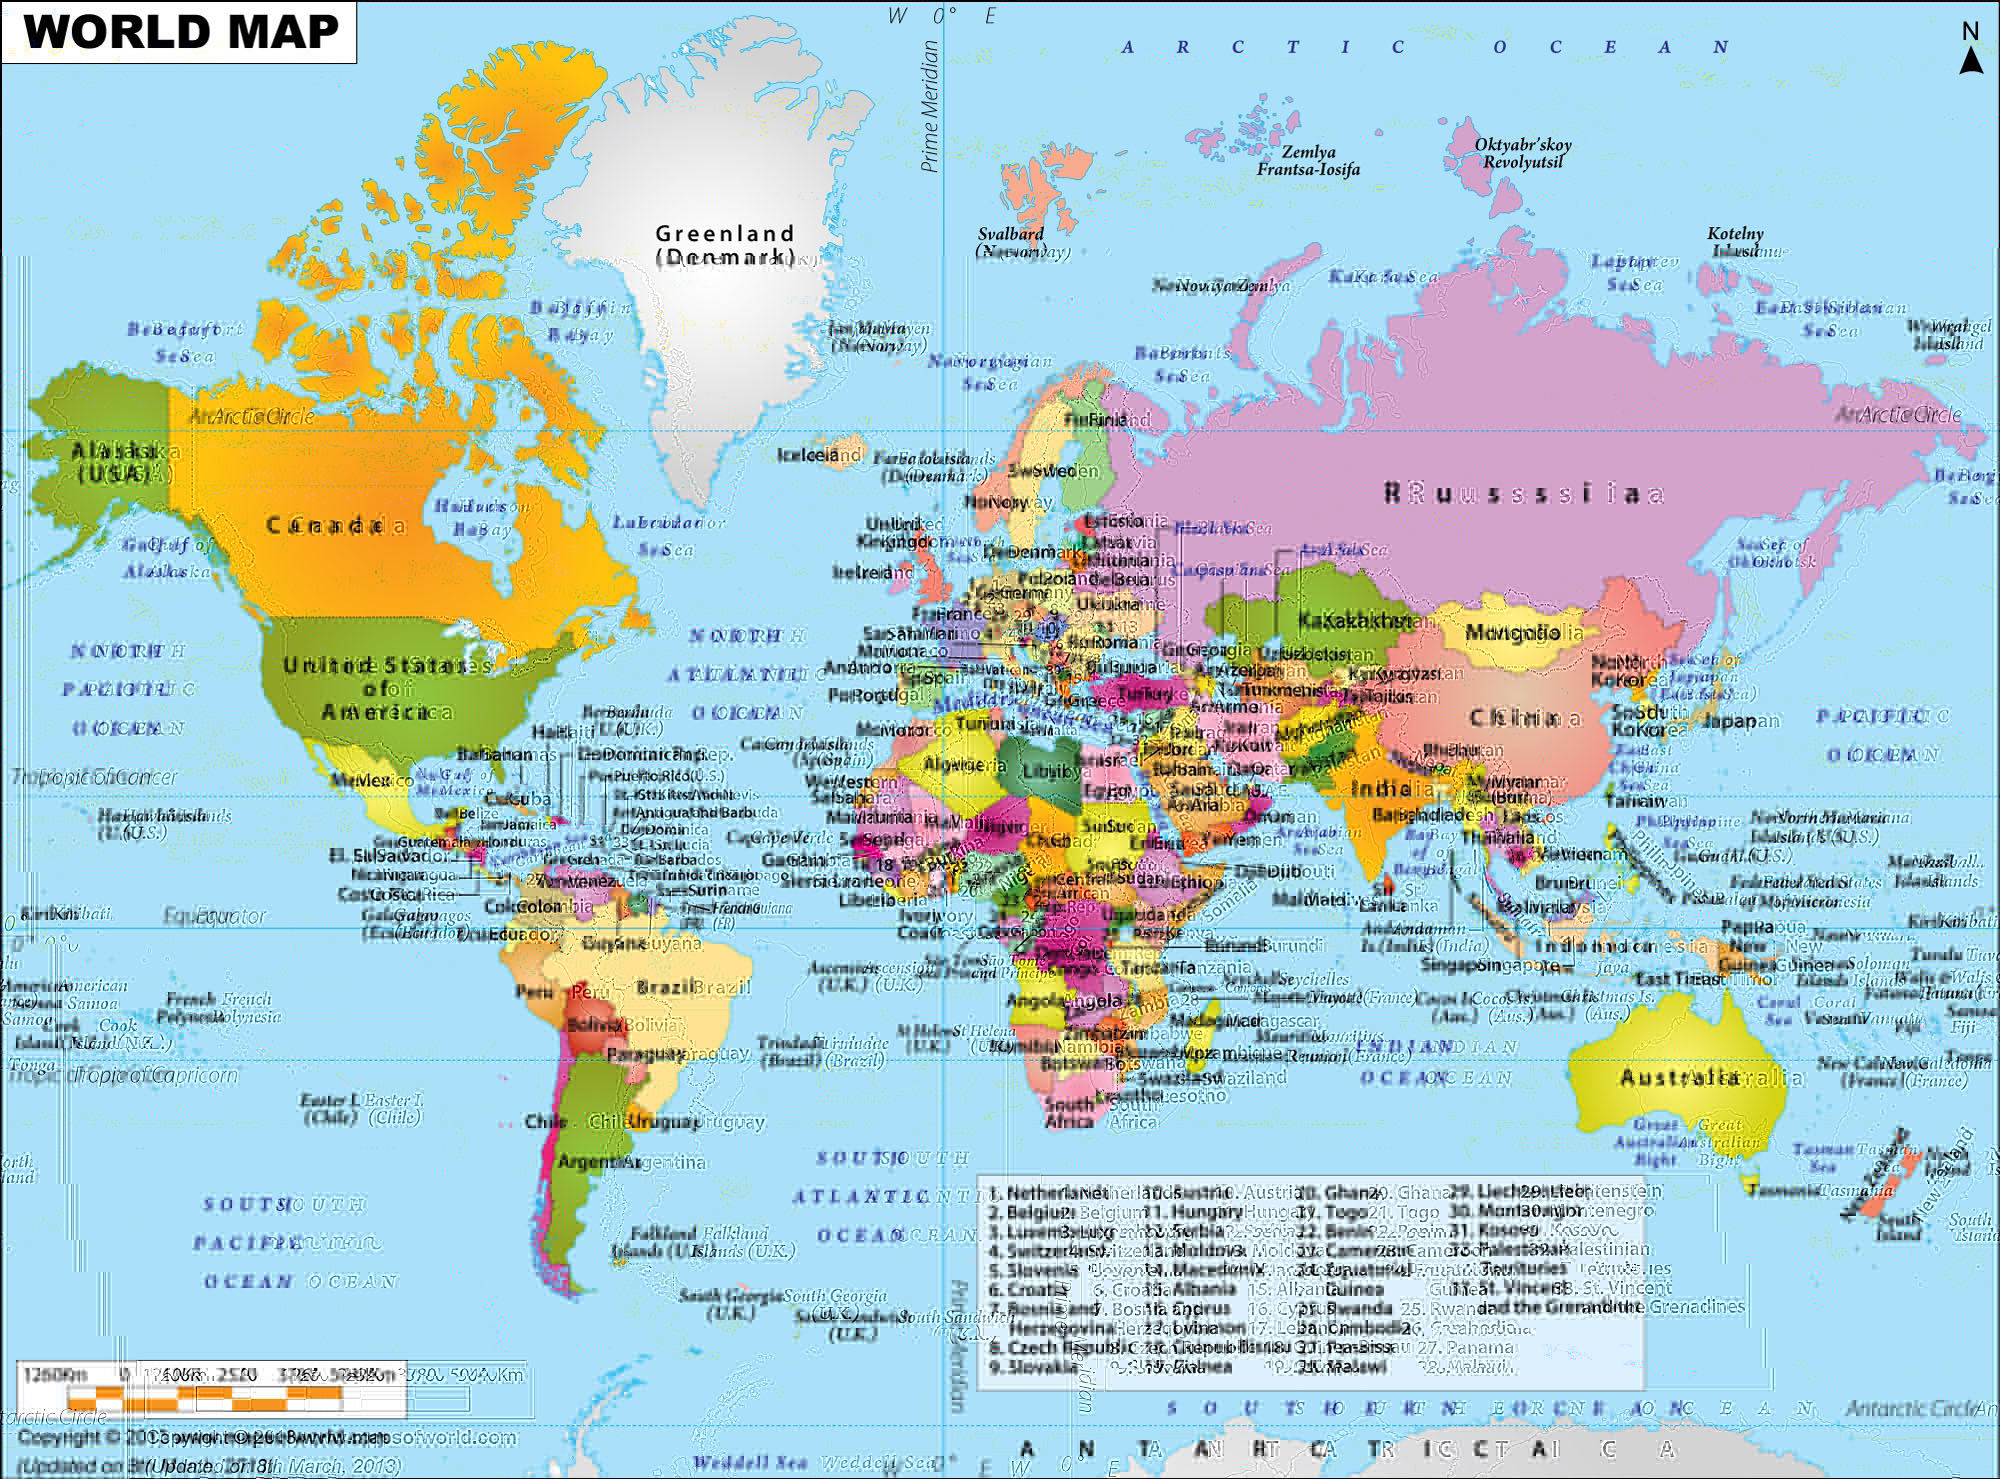 World Map, jpeg header huffman swap bytes middle corruption